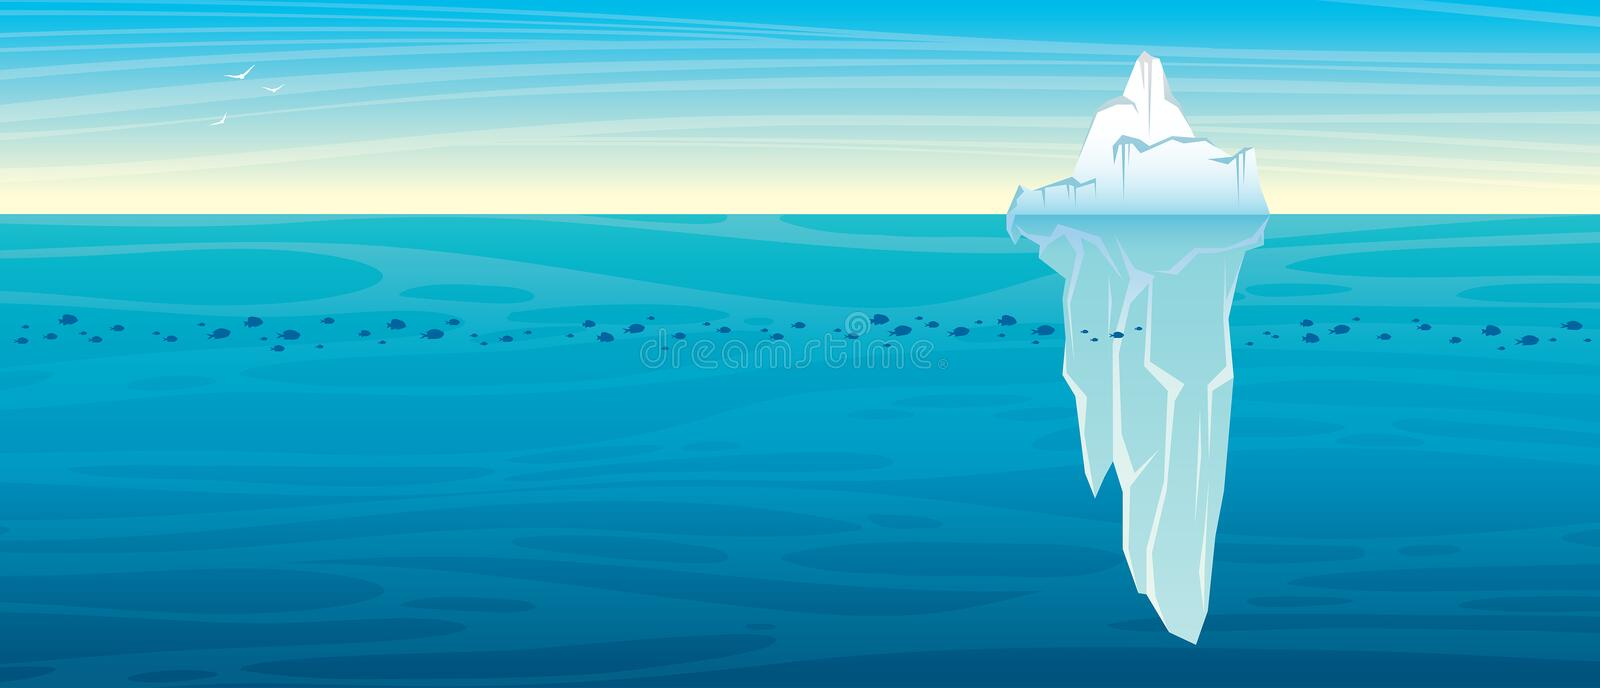 Nature landscape with iceberg. ocean and sky. royalty free illustration